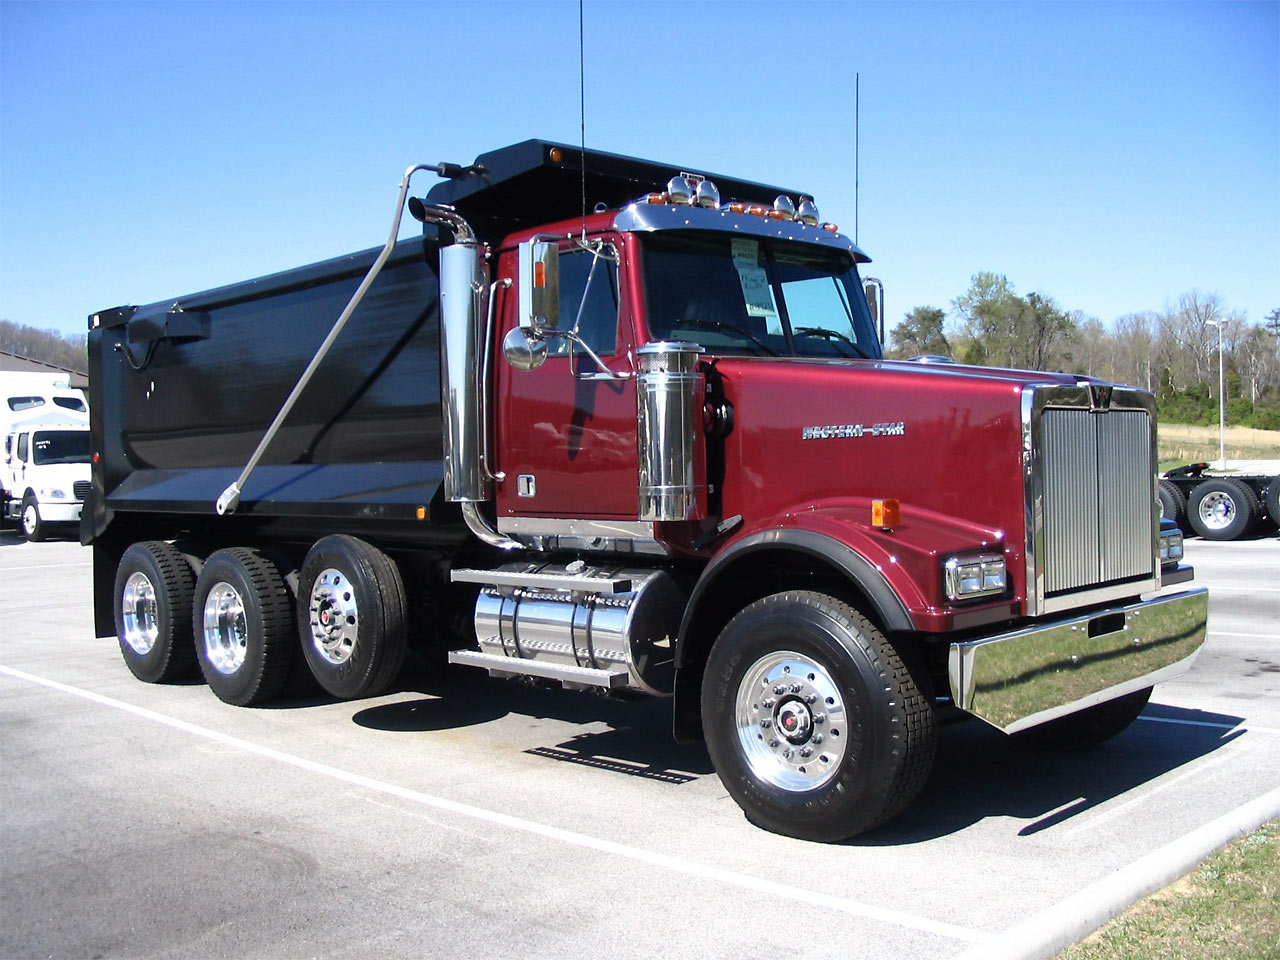 Heavy Duty Truck For Sale Ohio >> Trucks For Sale Commercial Trucks Western Star | Autos Post